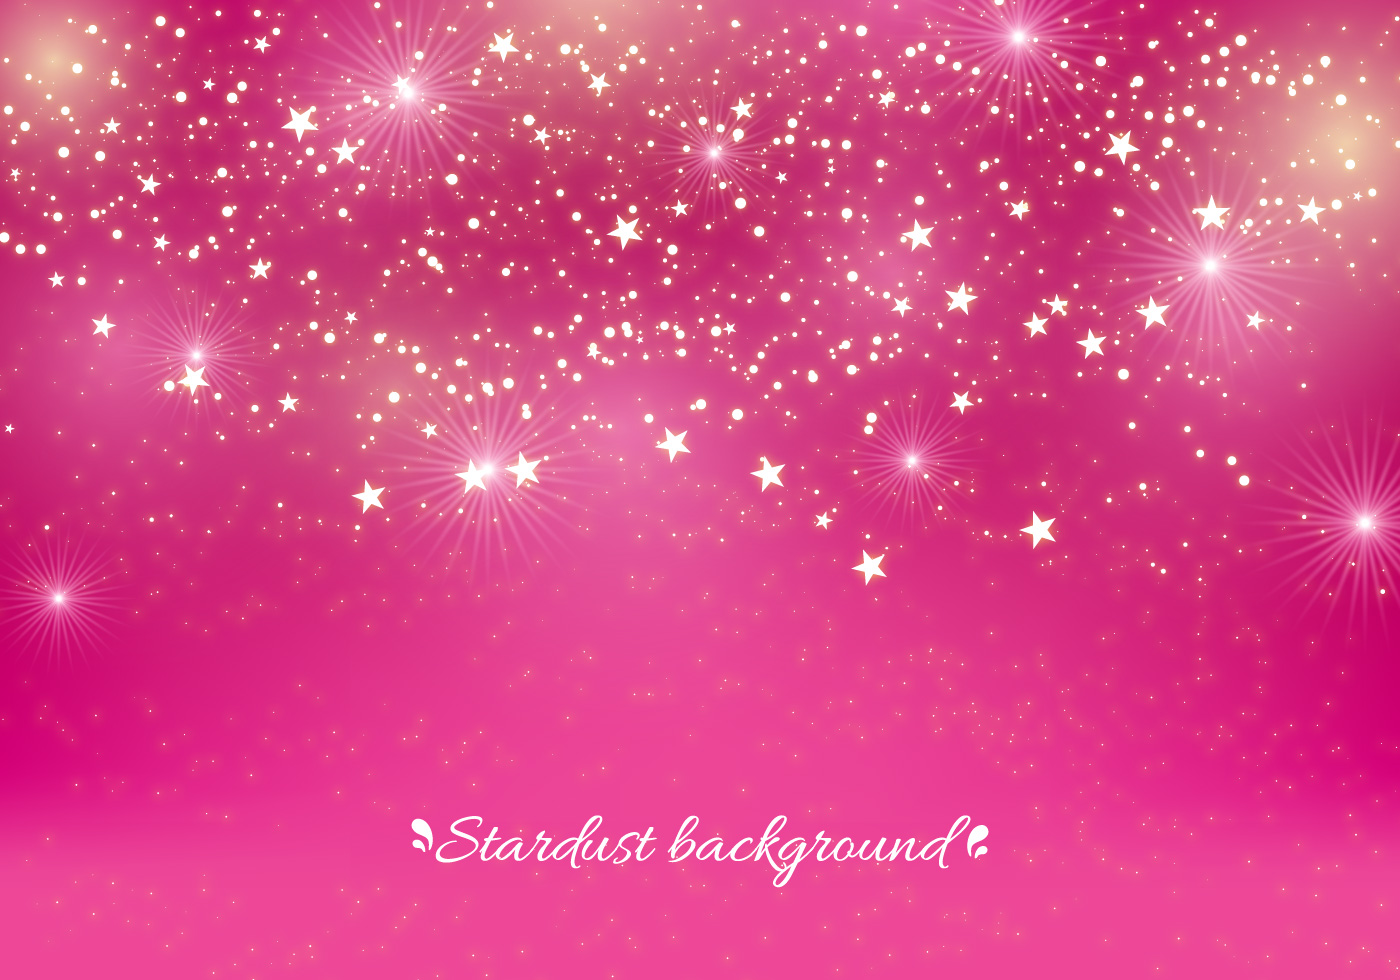 pink background vector - photo #19